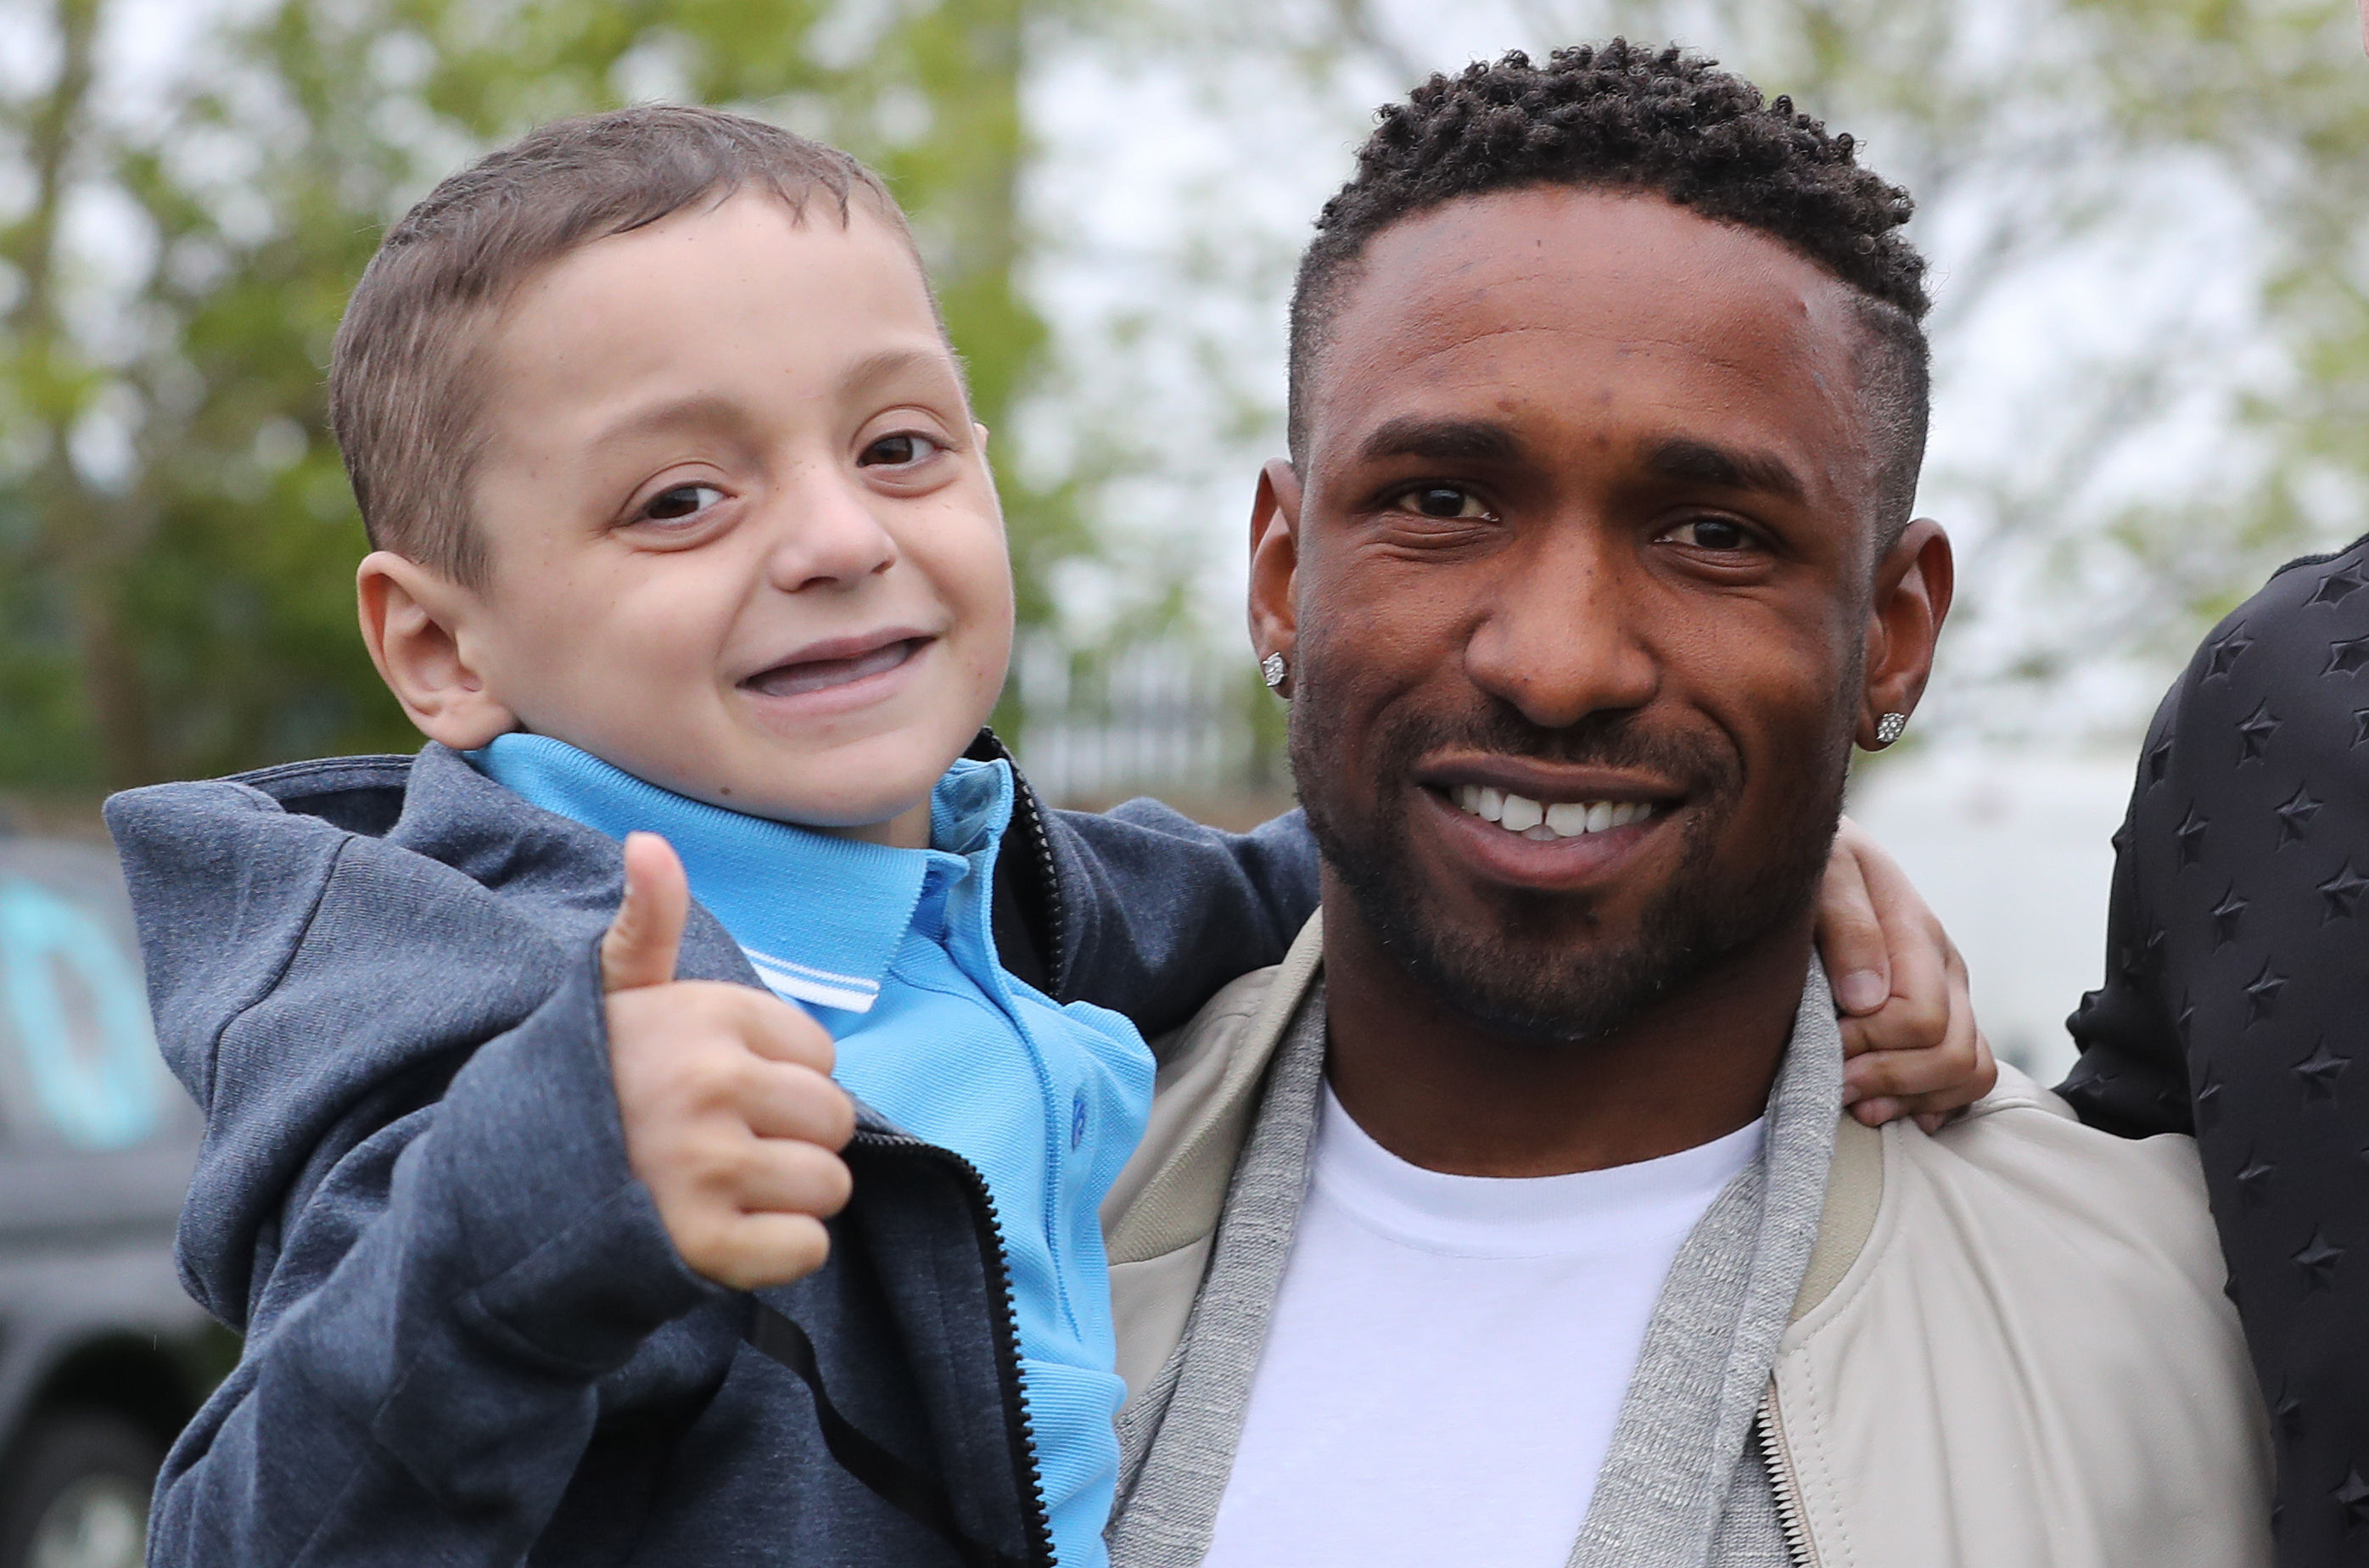 Jermain Defoe breaks down, shares emotional thoughts on Bradley Lowery